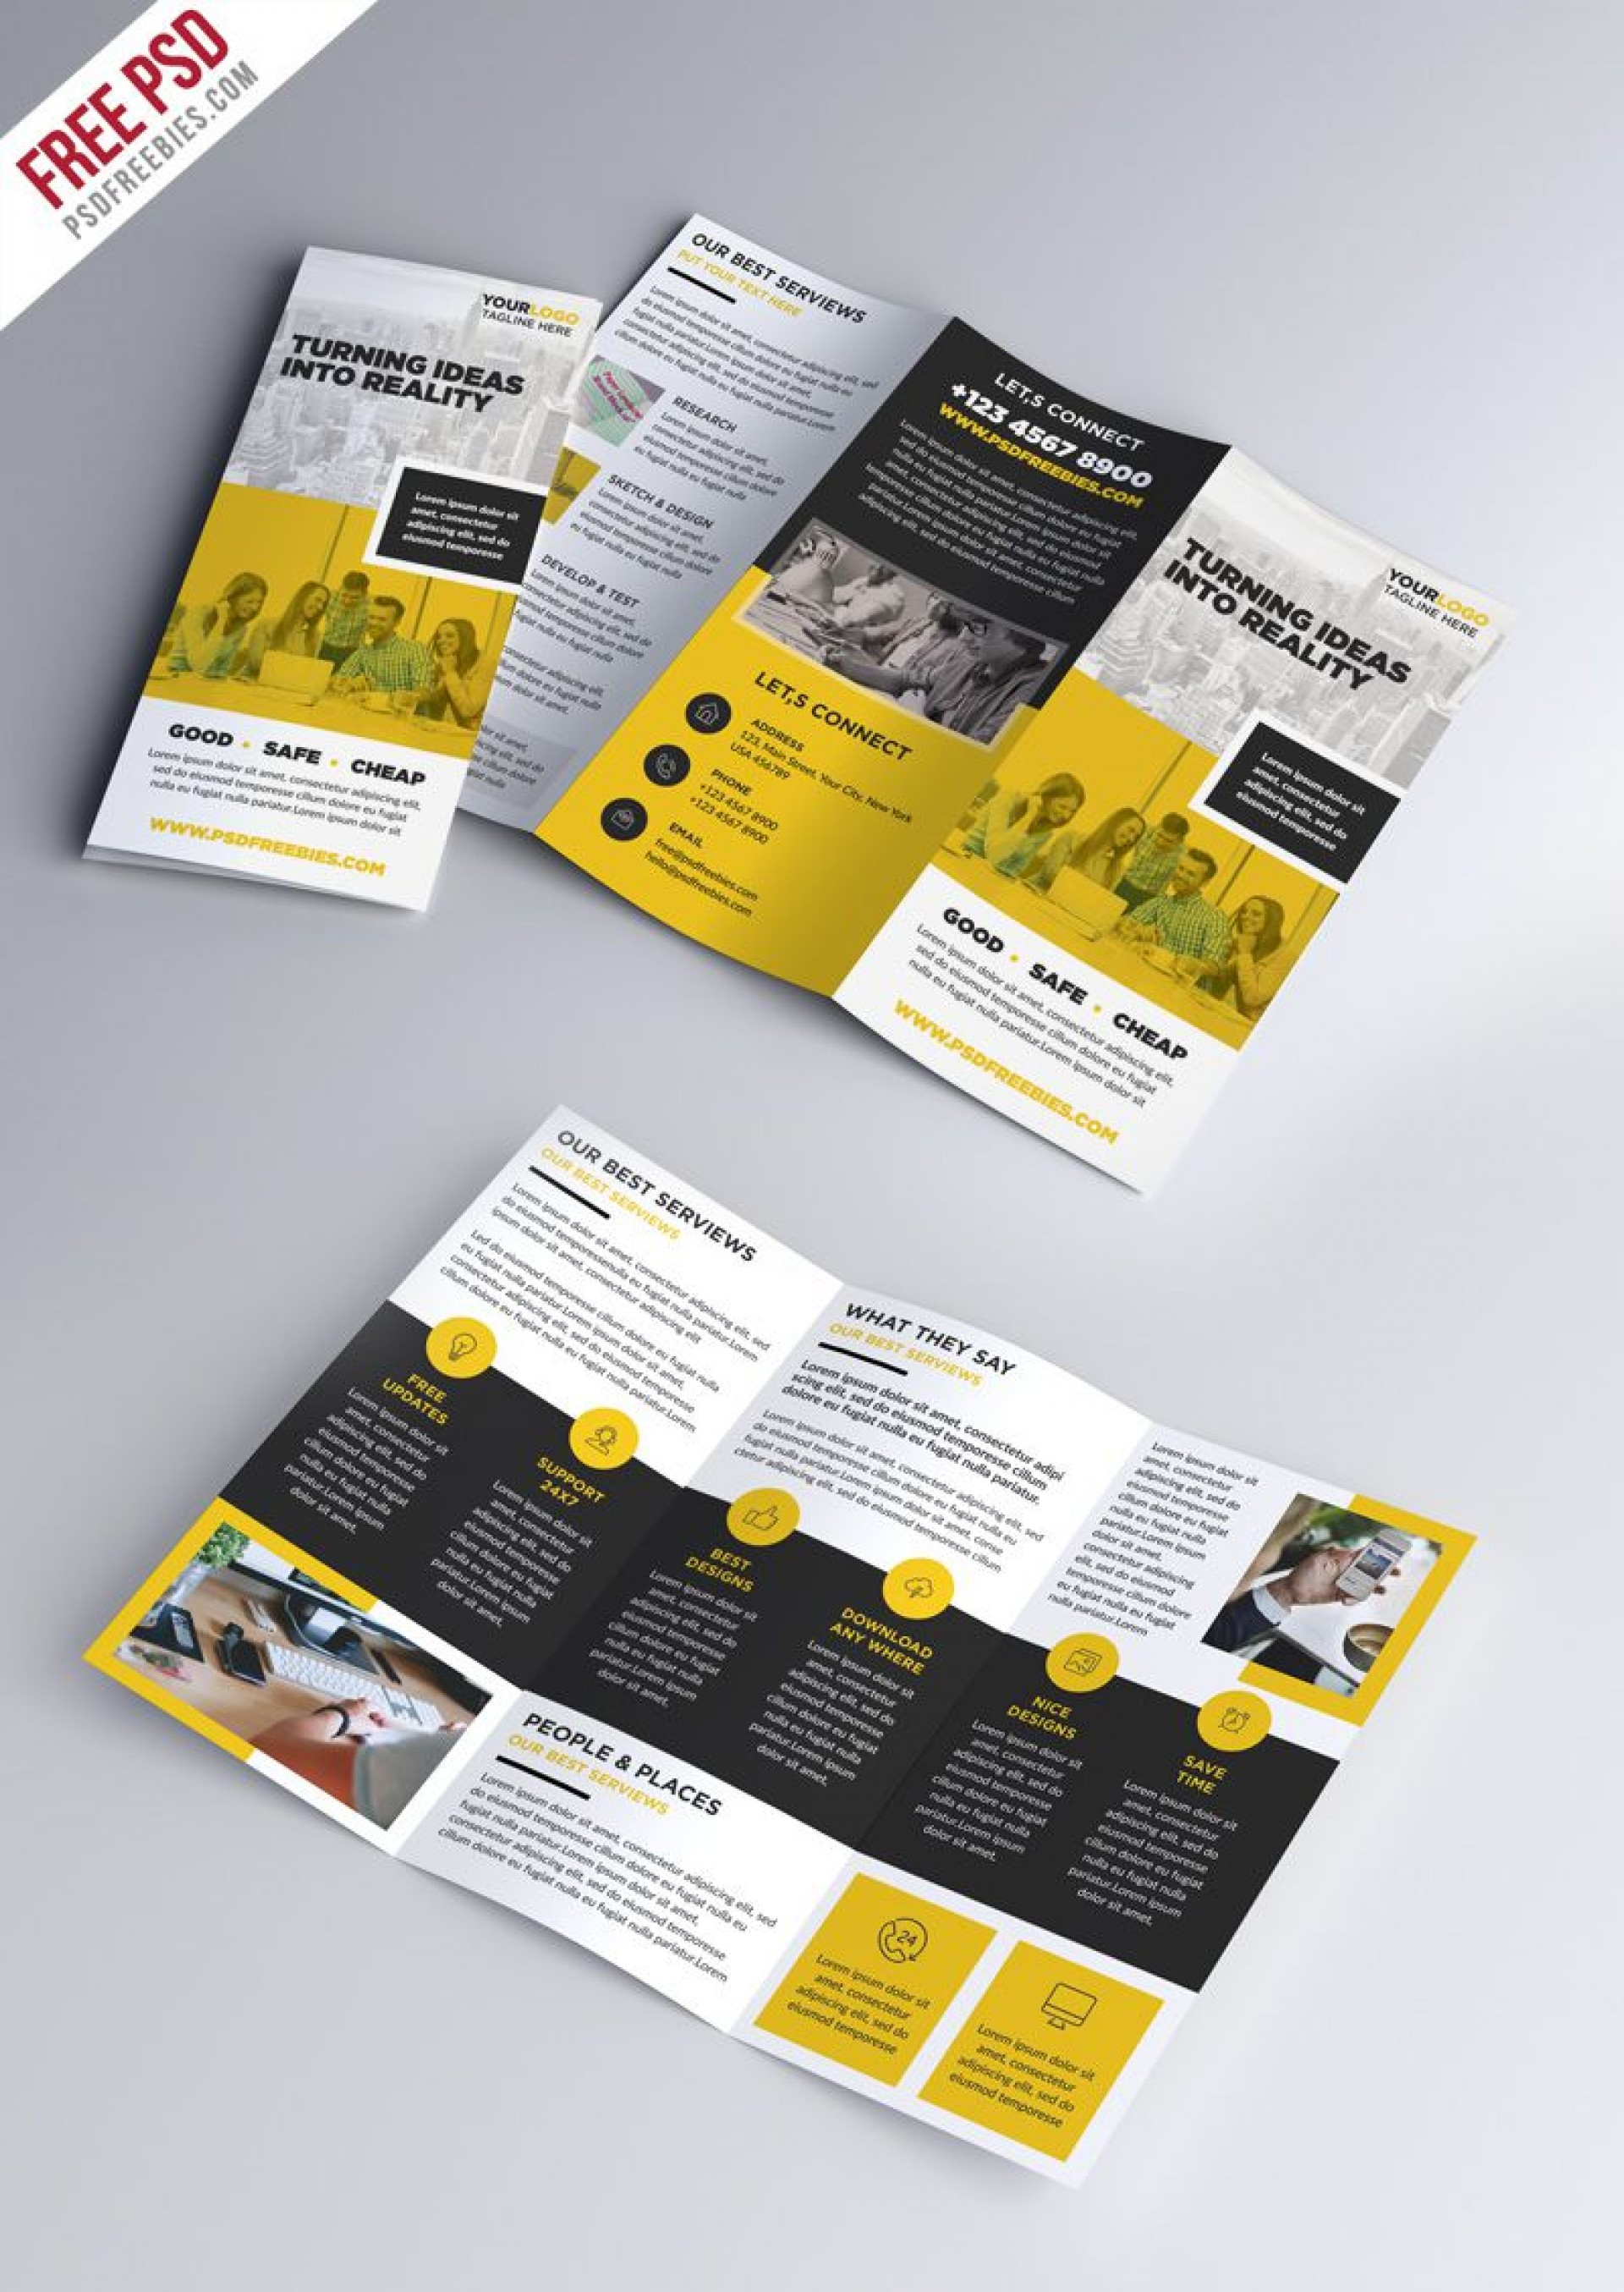 008 Excellent Three Fold Brochure Template Psd Photo  Free 3 A4 Tri Download1920